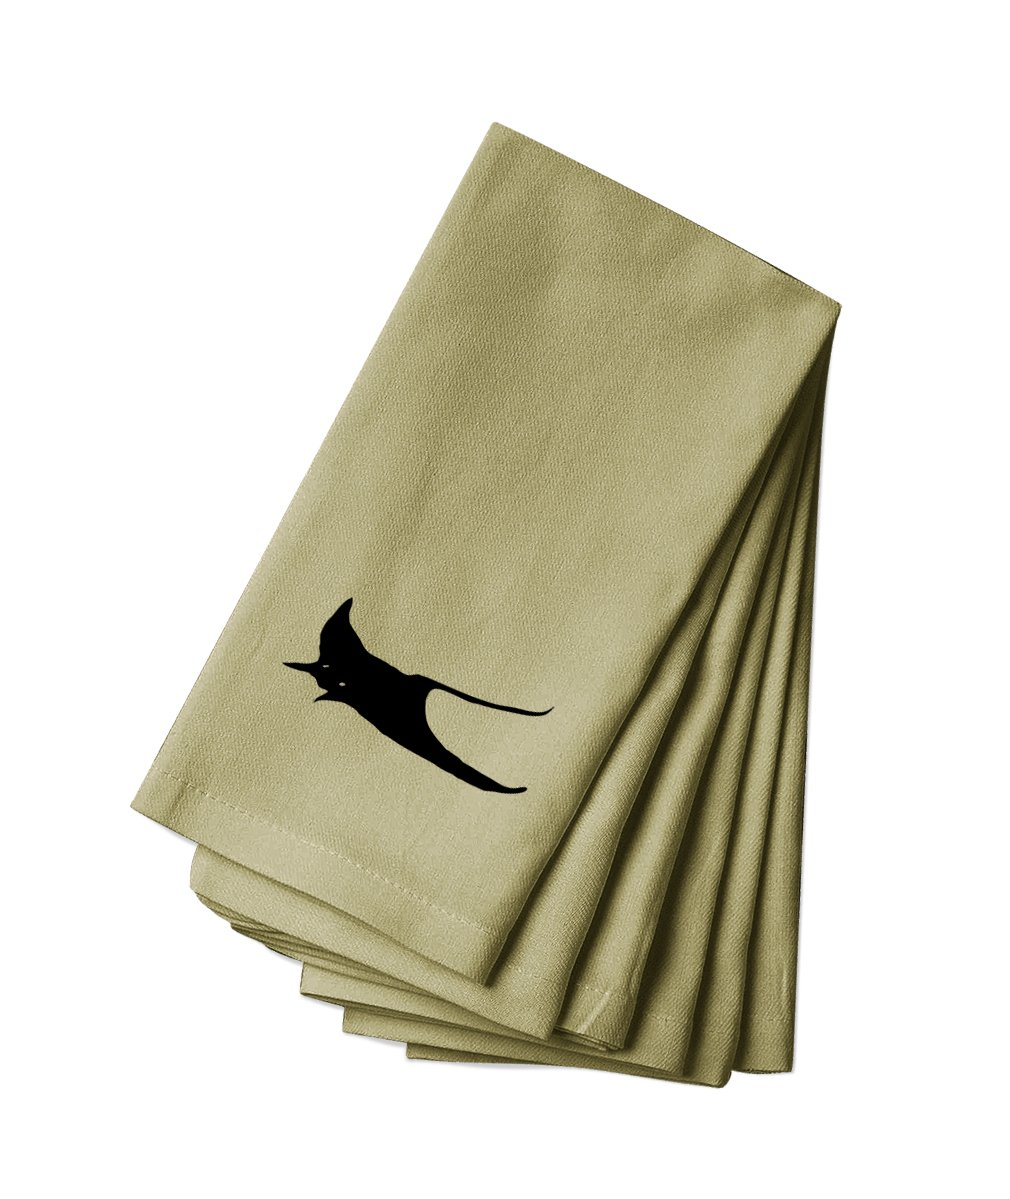 Style in Print Cotton Canvas Dinner Napkin Set Of 4 Manta Ray Animal Image By